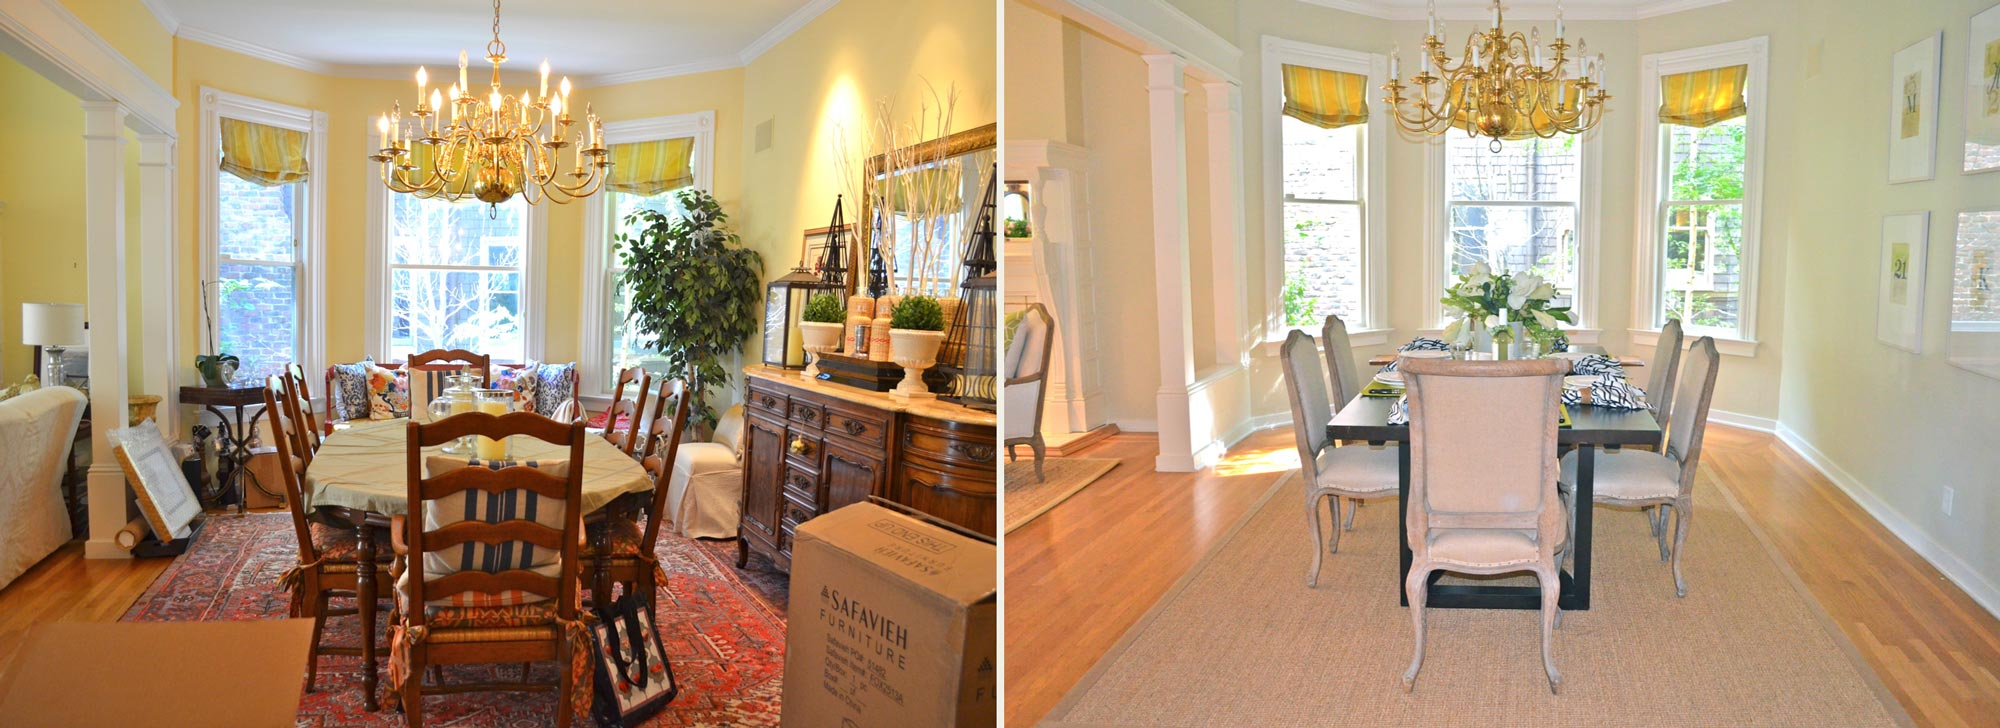 cary-nowell-staging-before-after-10.jpg